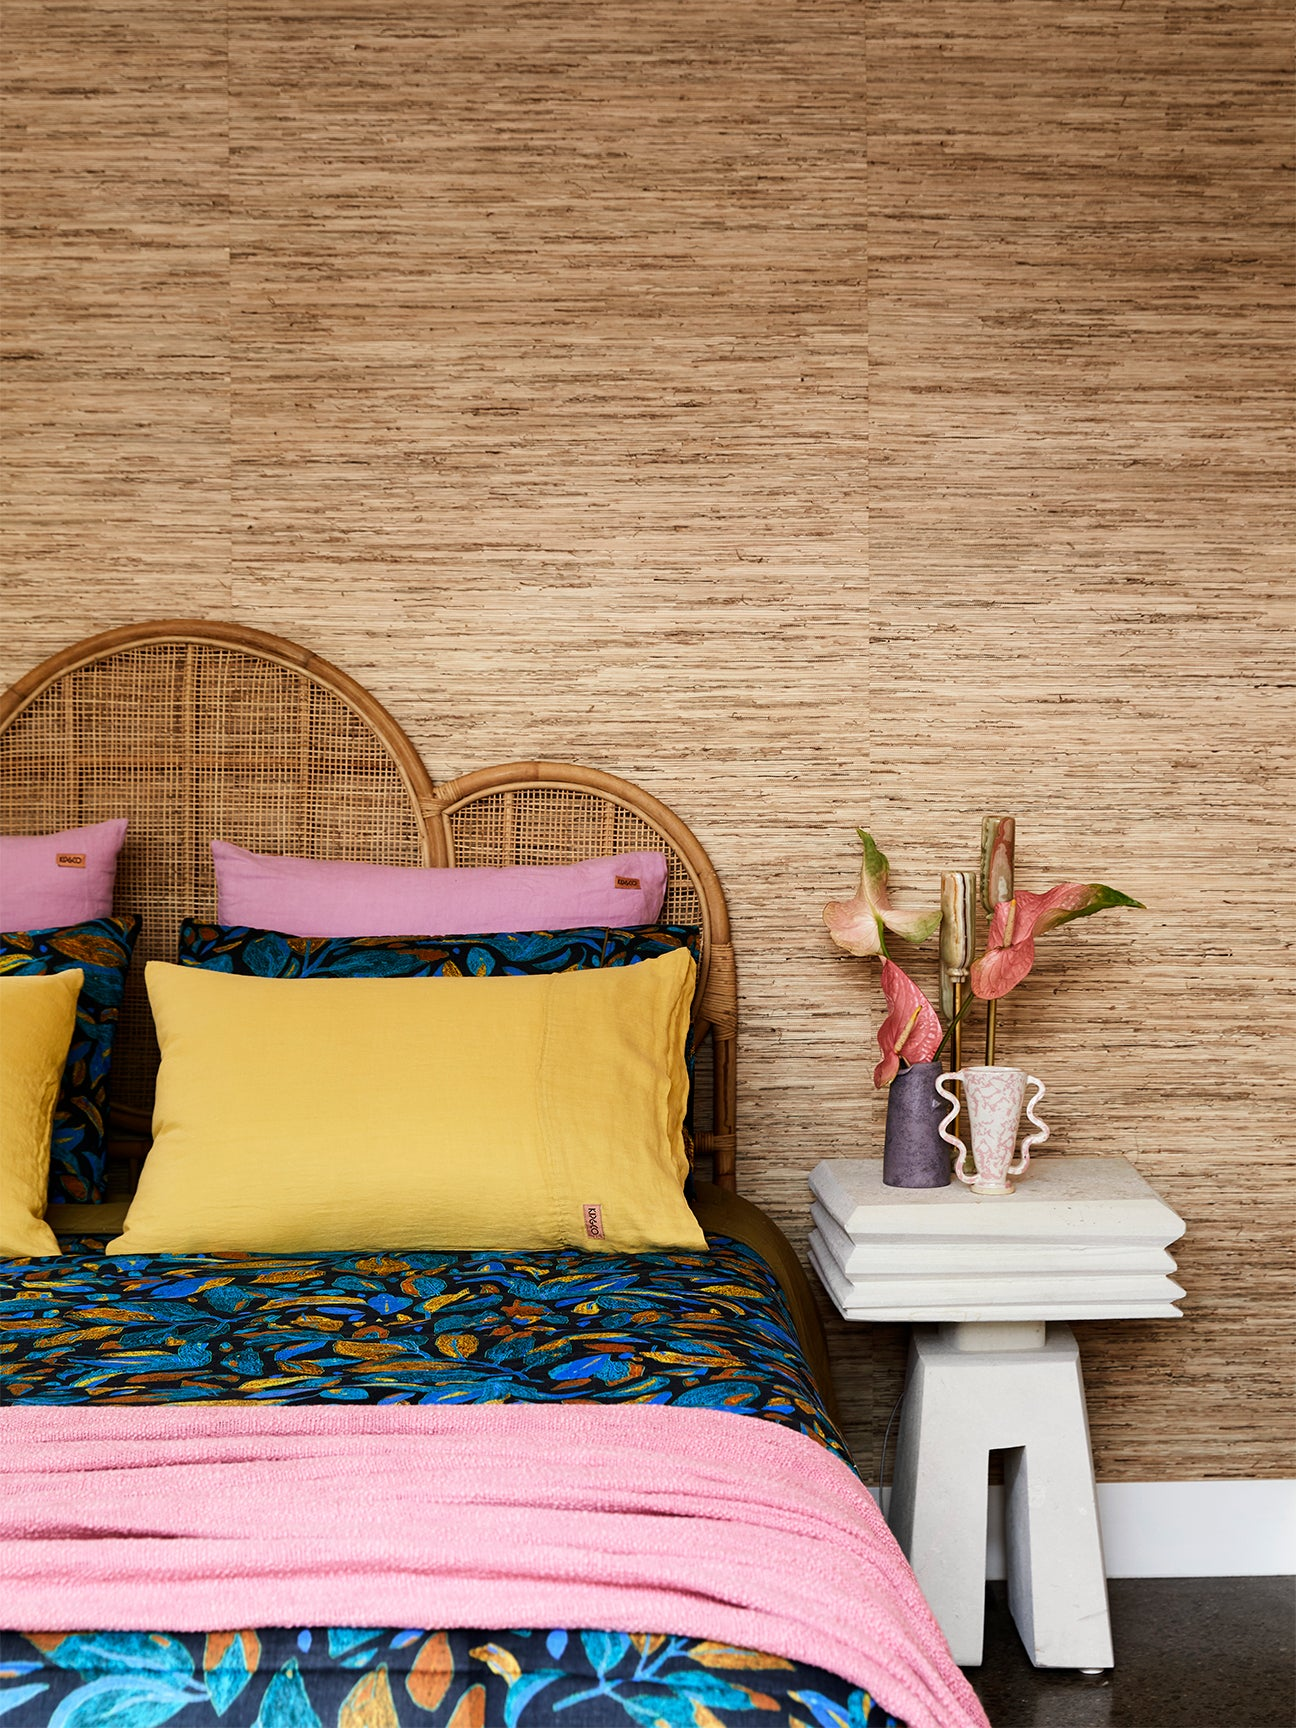 Bedroom with seagrass wallpaper